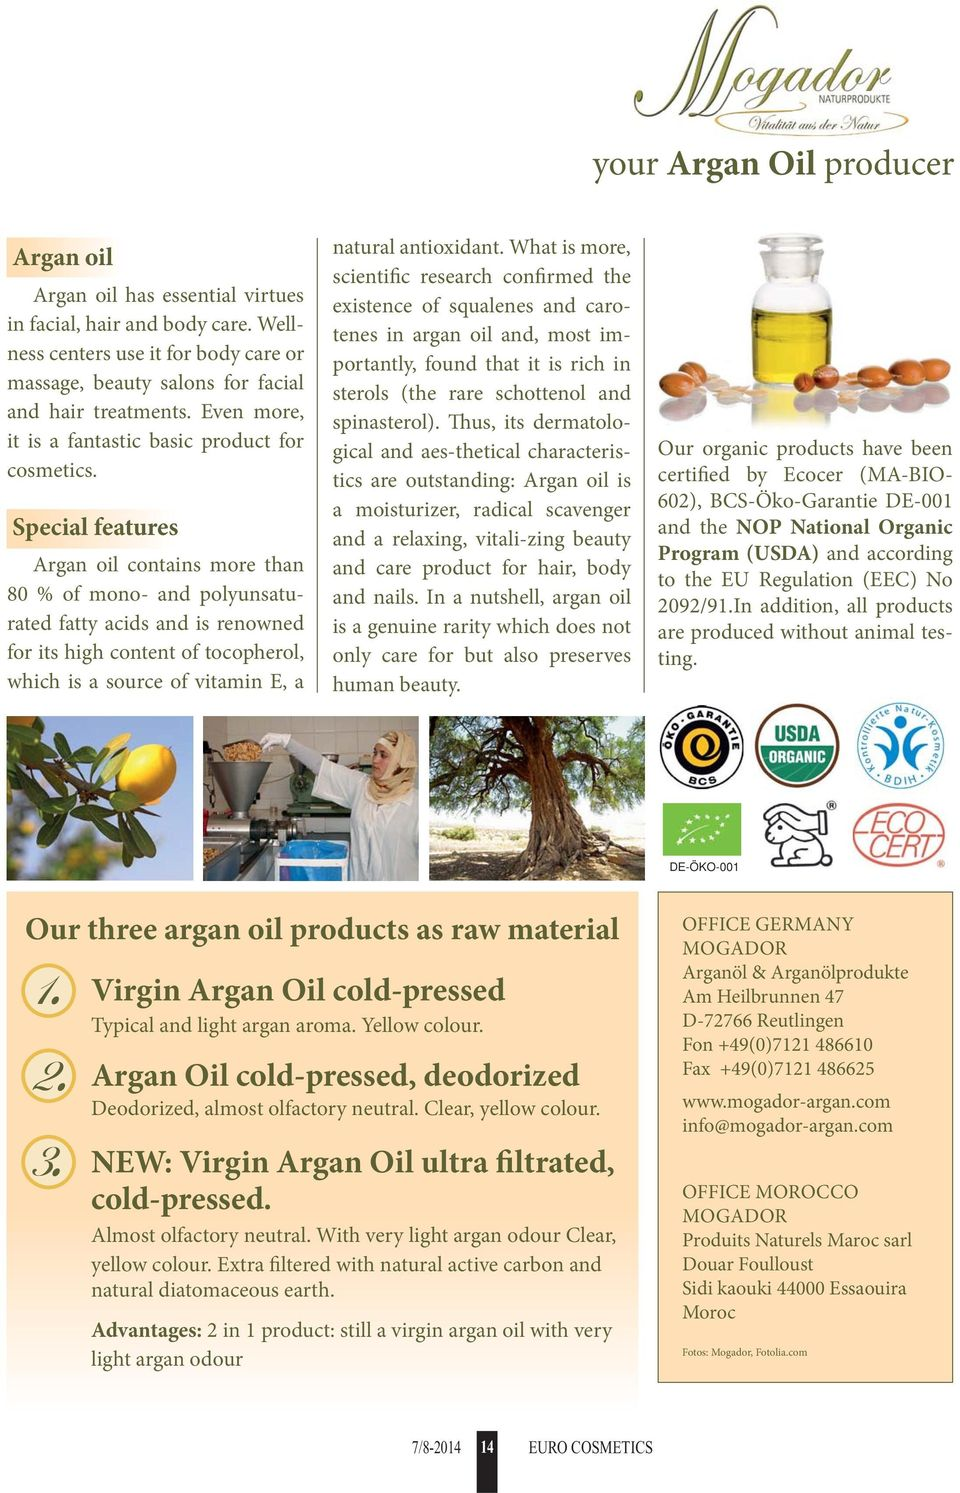 Special features Argan oil contains more than 80 % of mono- and polyunsaturated fatty acids and is renowned for its high content of tocopherol, which is a source of vitamin E, a natural antioxidant.